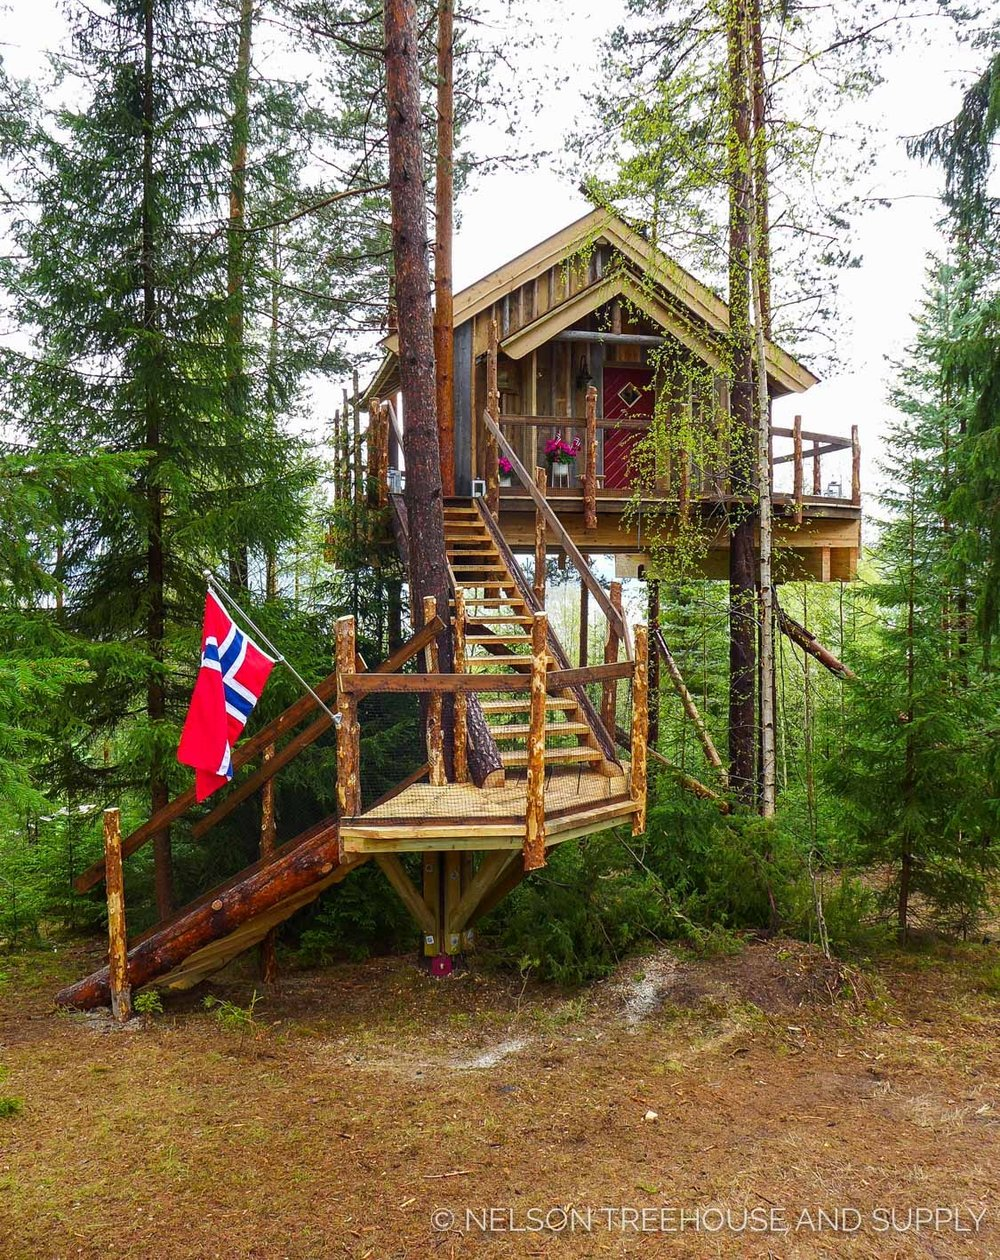 So grateful to have Collaborated with Norwegian Treehouse-designer Frode Schei on this project.